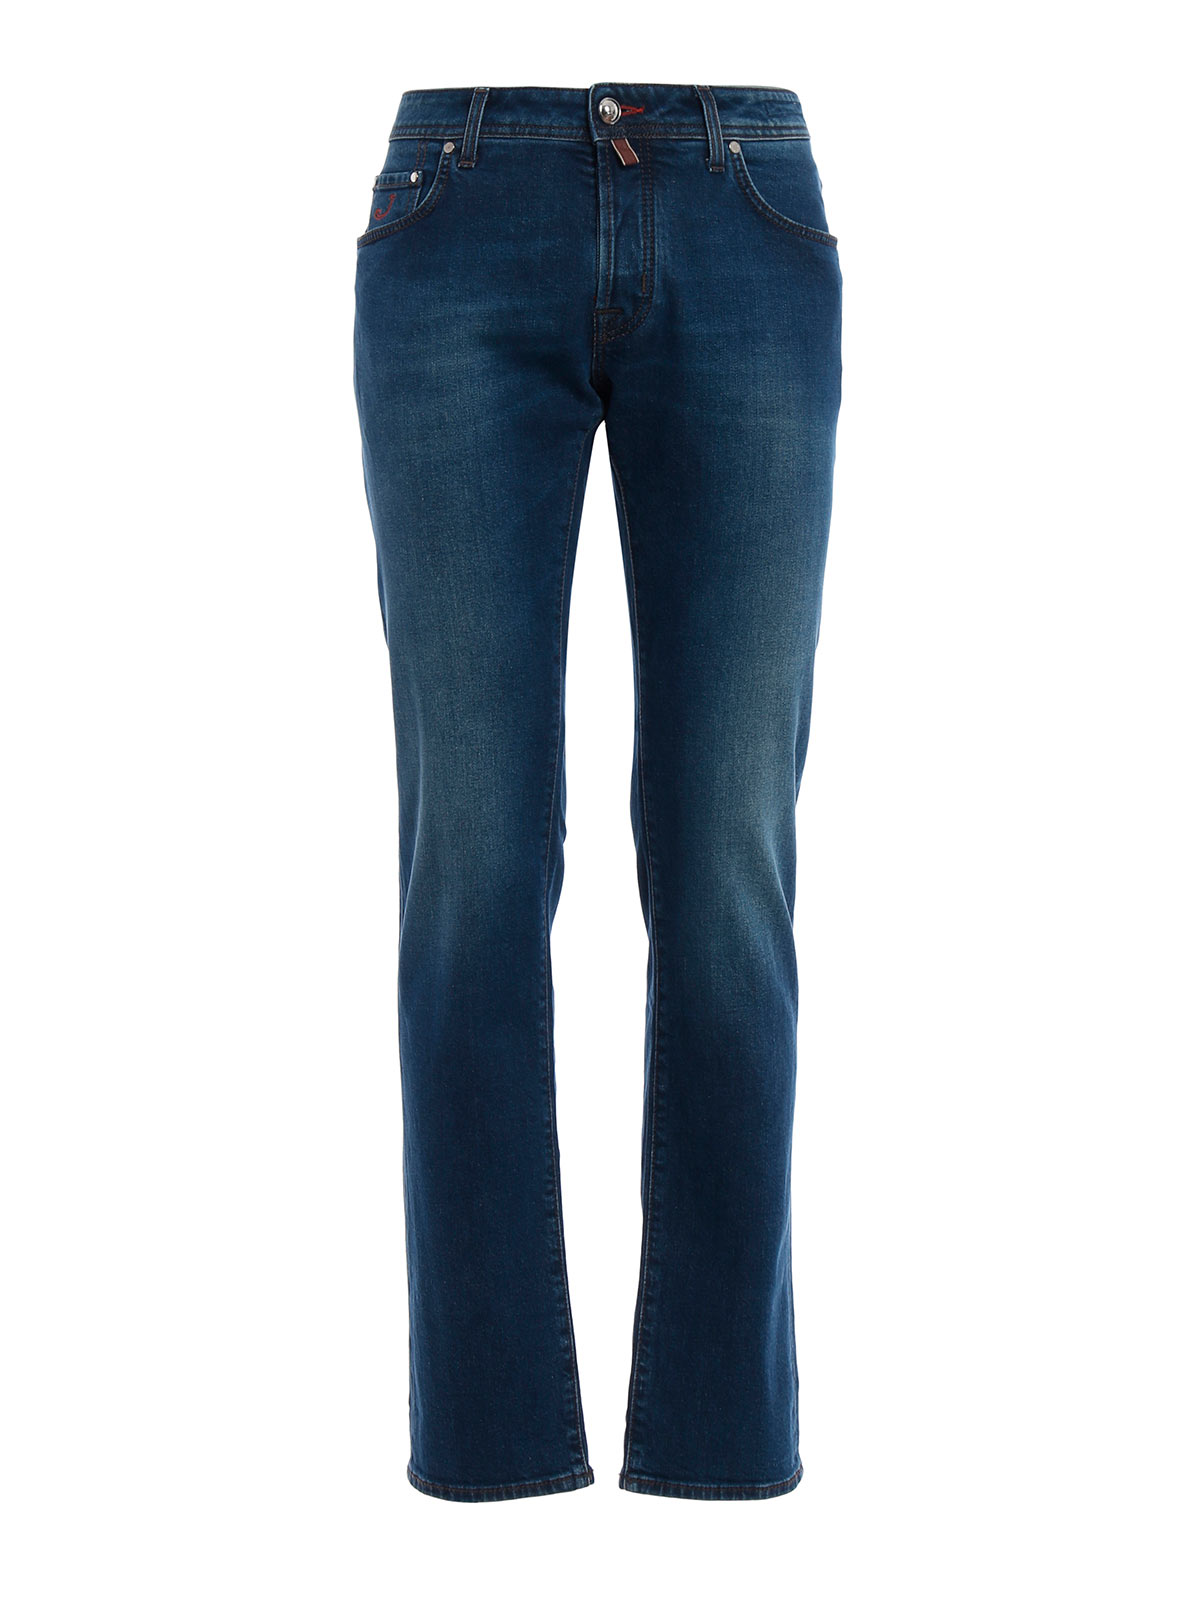 Picture of JACOB COHEN | Men's Stretch Jeans